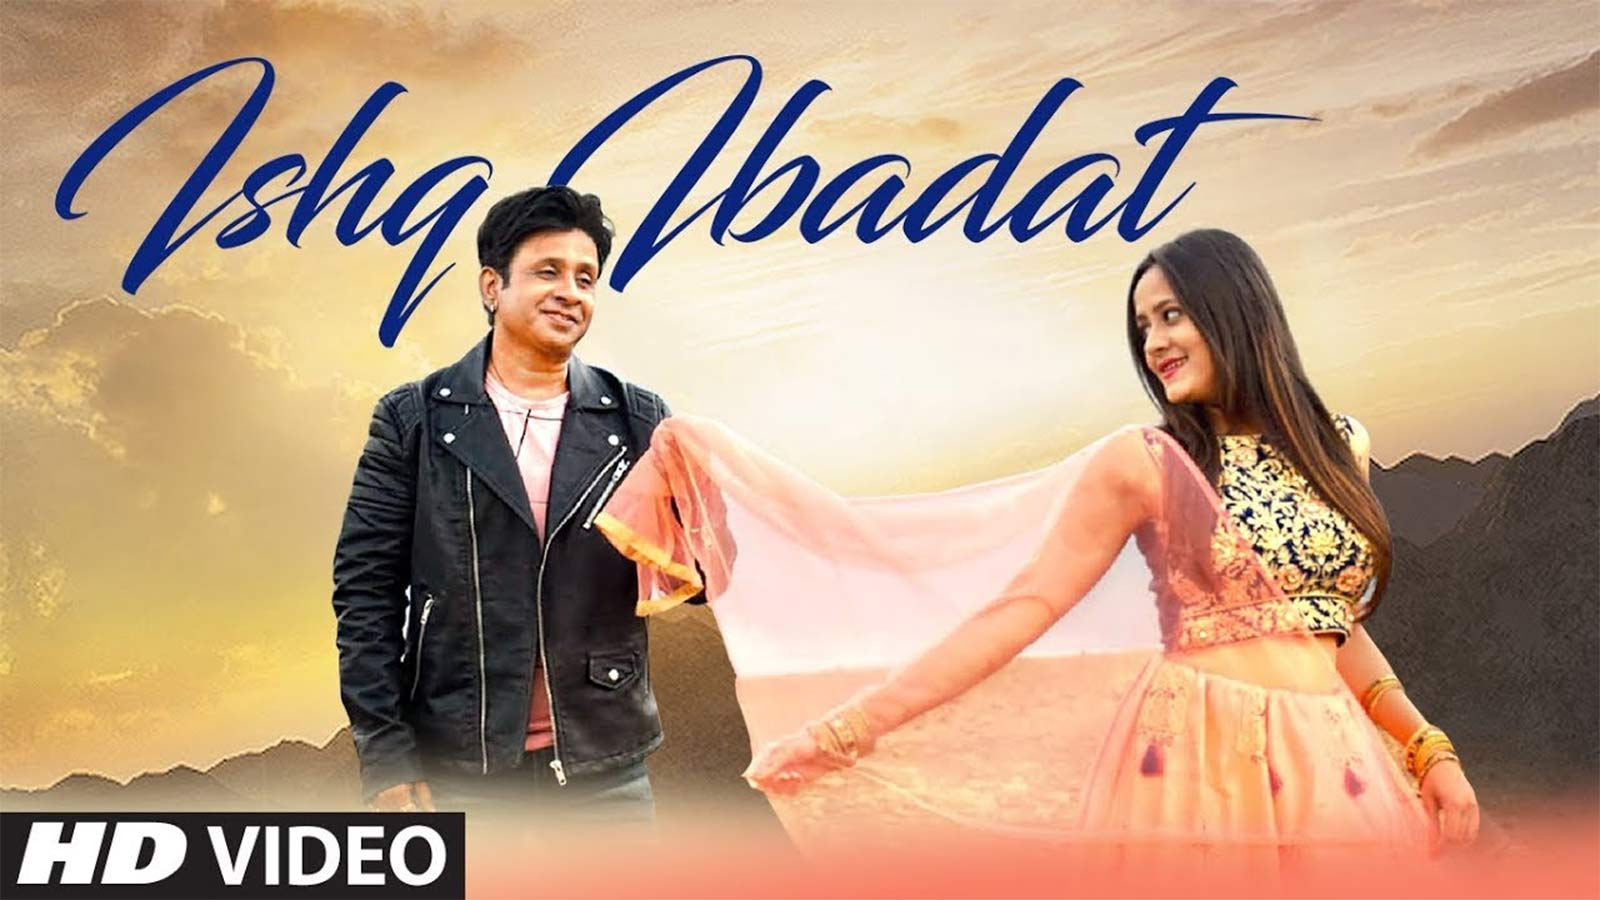 Hindi Song 'Ishq Ibaadat' Sung By Nikhil Ritesh